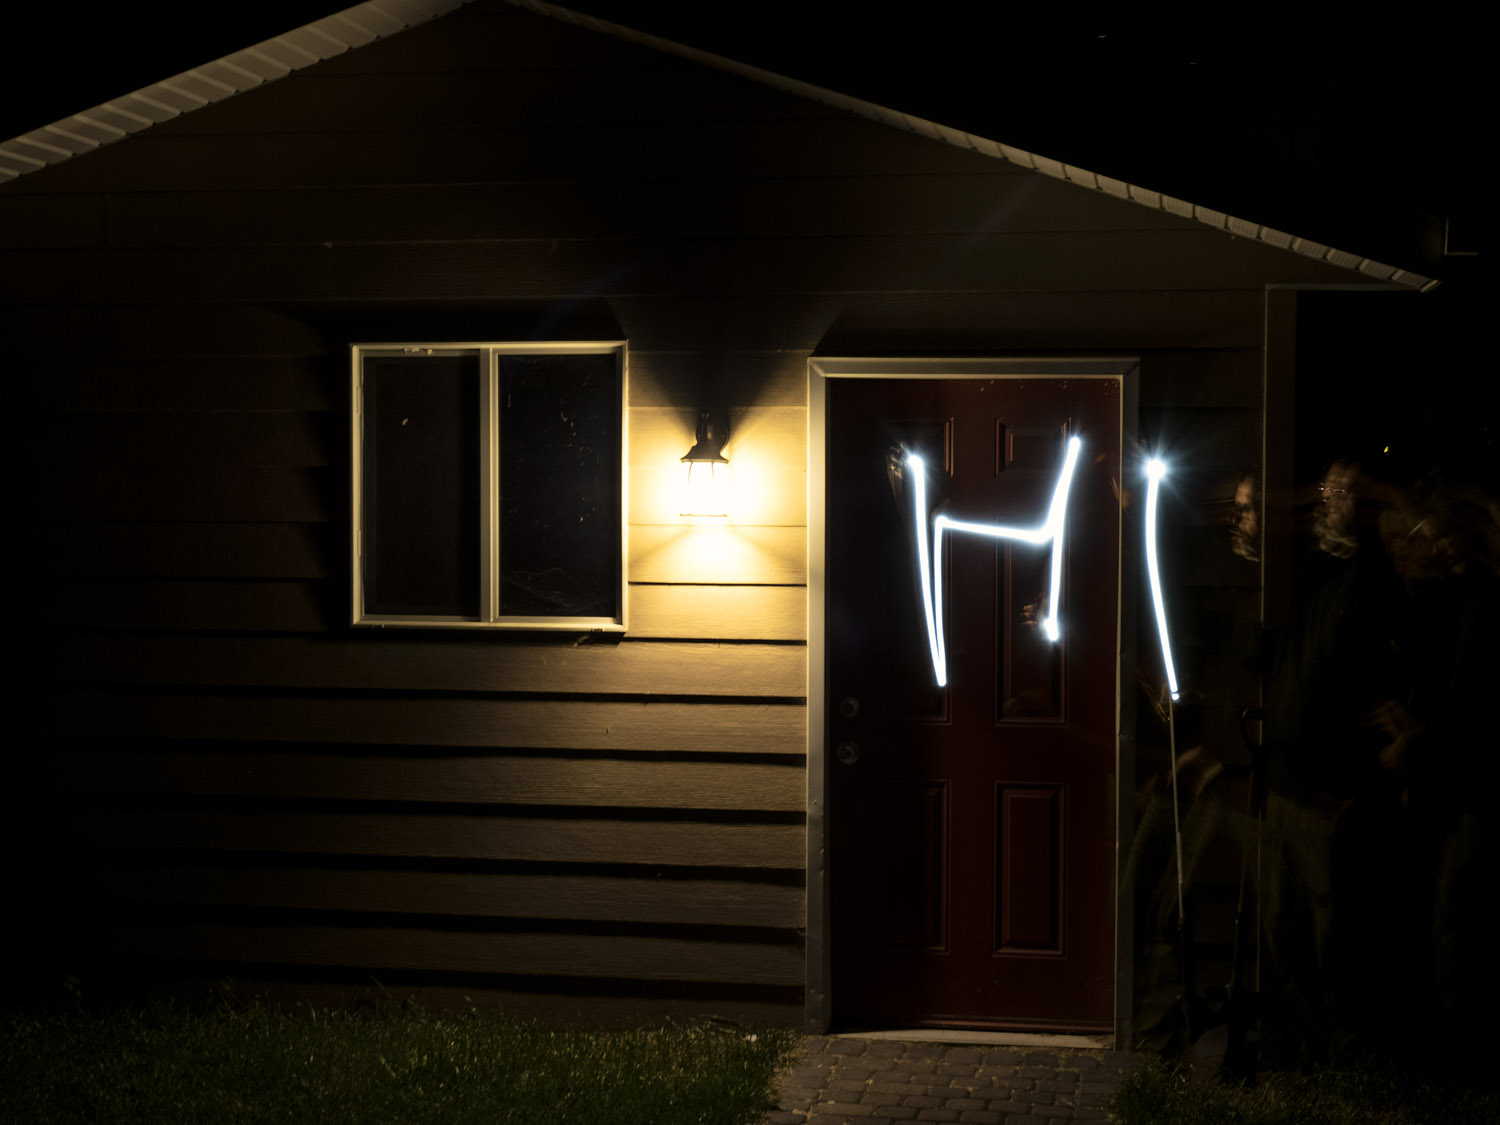 Image: Live composite allows you to do light painting with light sources present in the image (not t...